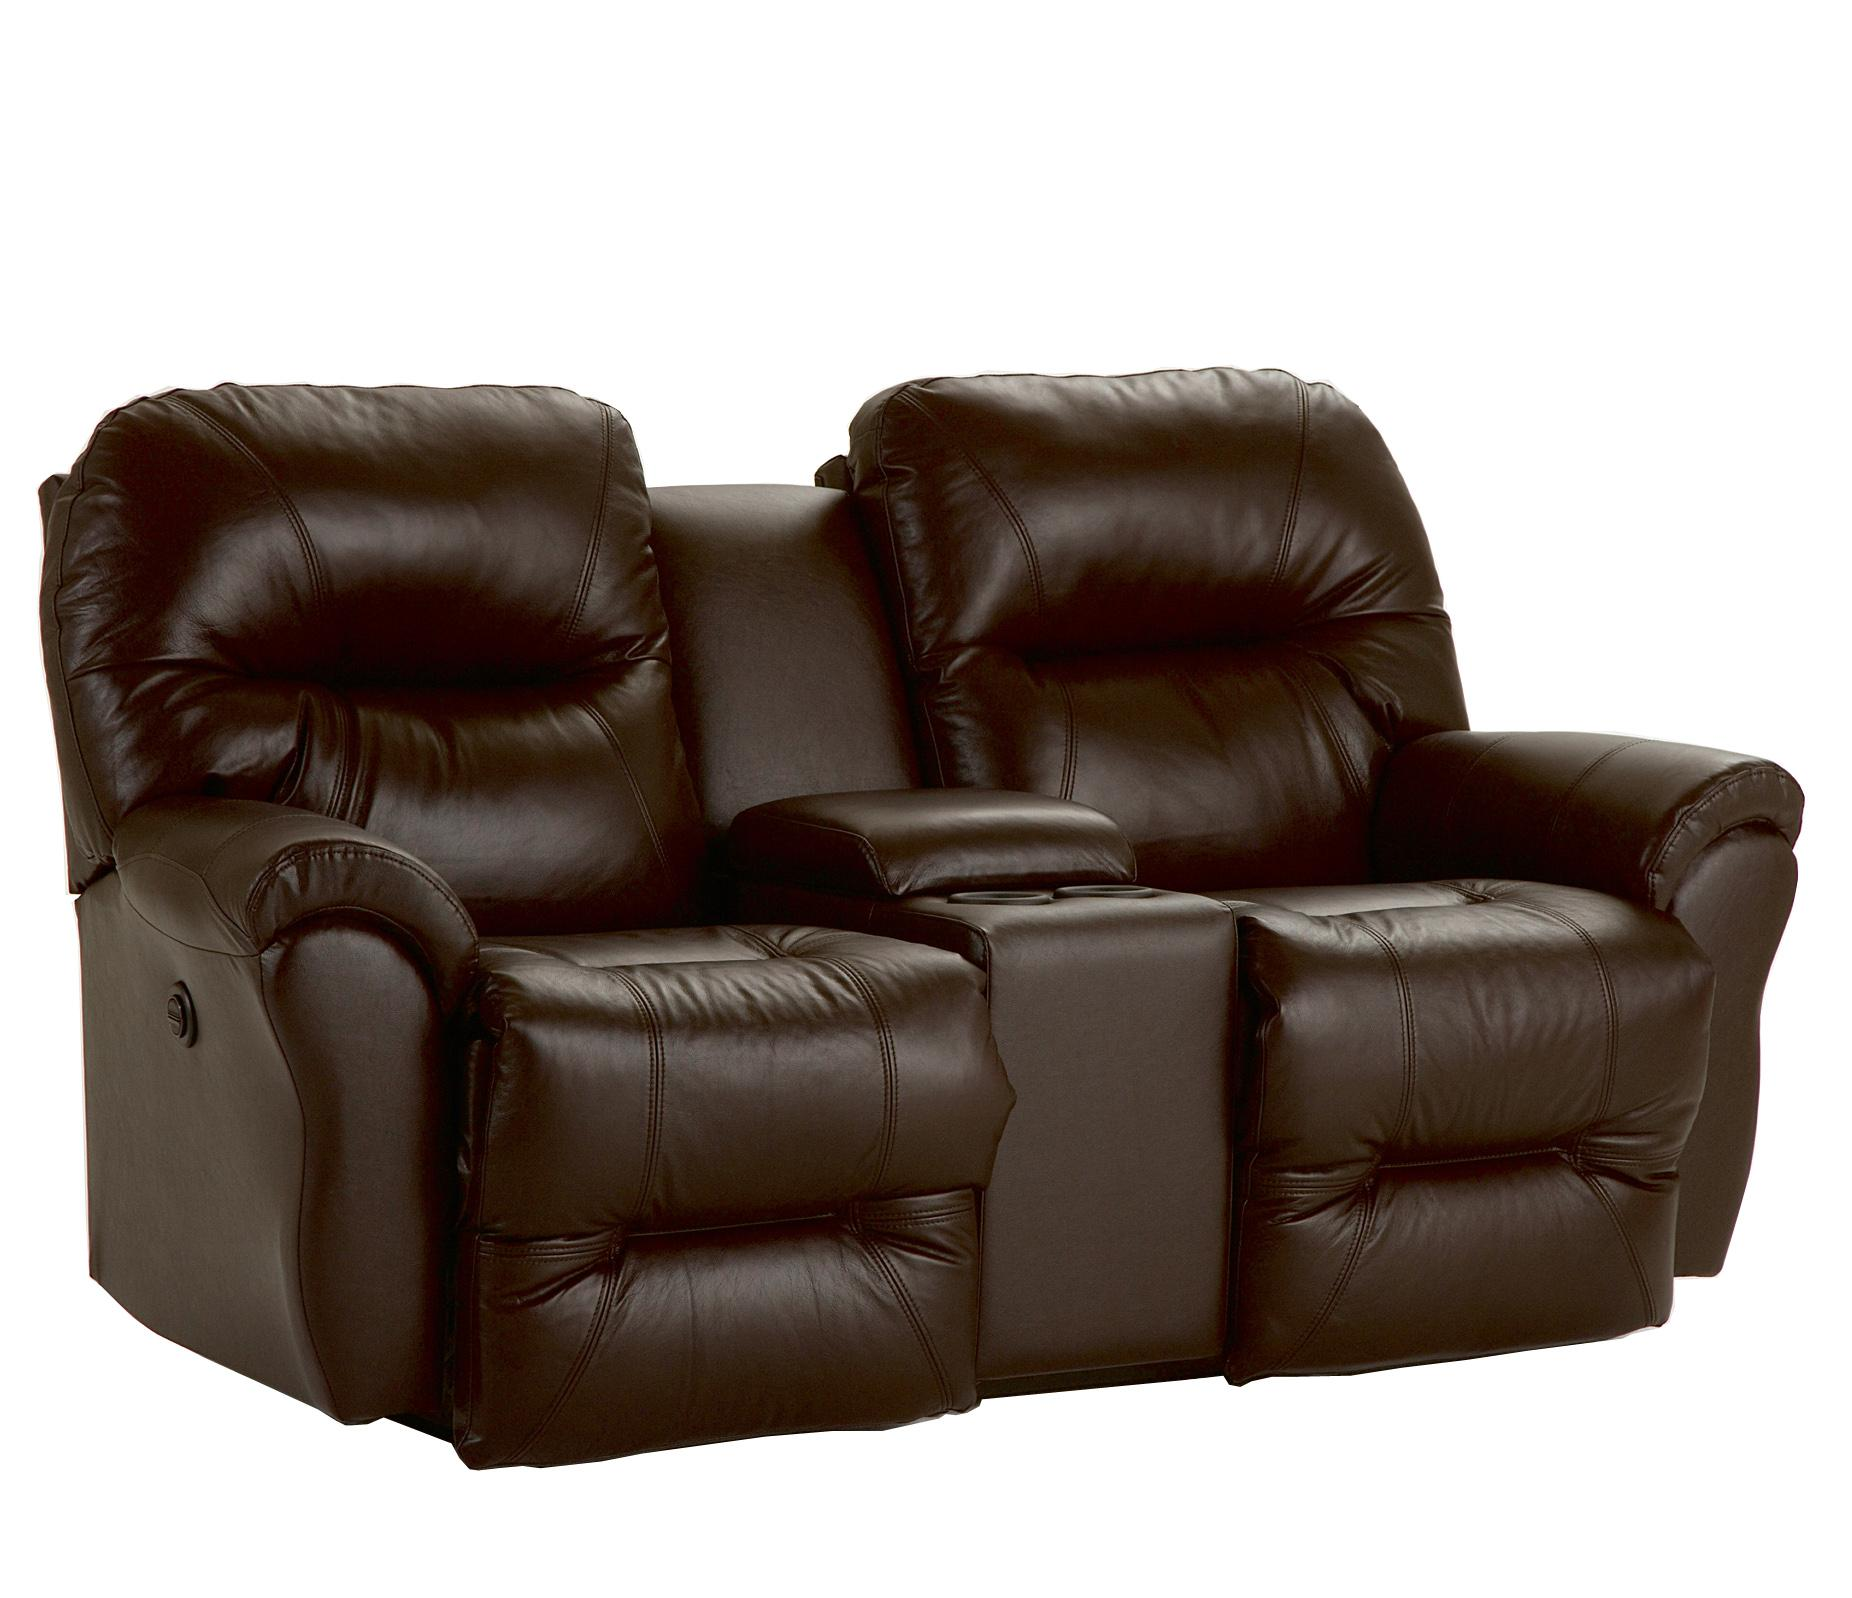 Rocking Reclining Loveseat With Storage Console By Best Home Furnishings Wolf And Gardiner